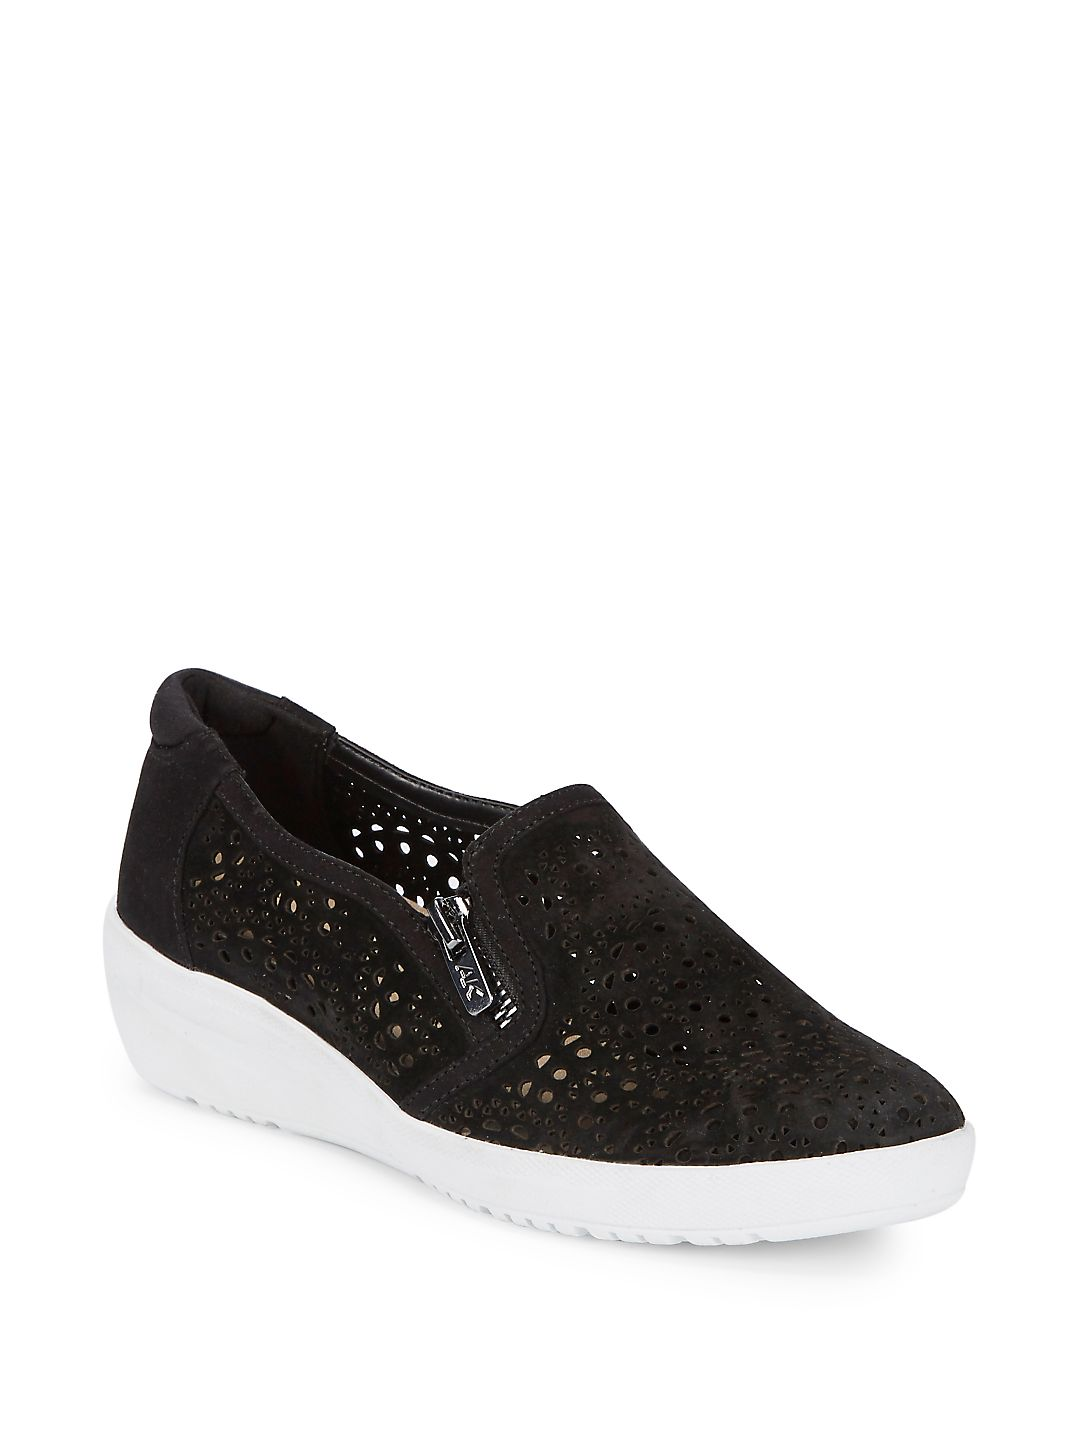 Yvette Laser-Cut Suede Demi-Wedge Sneakers